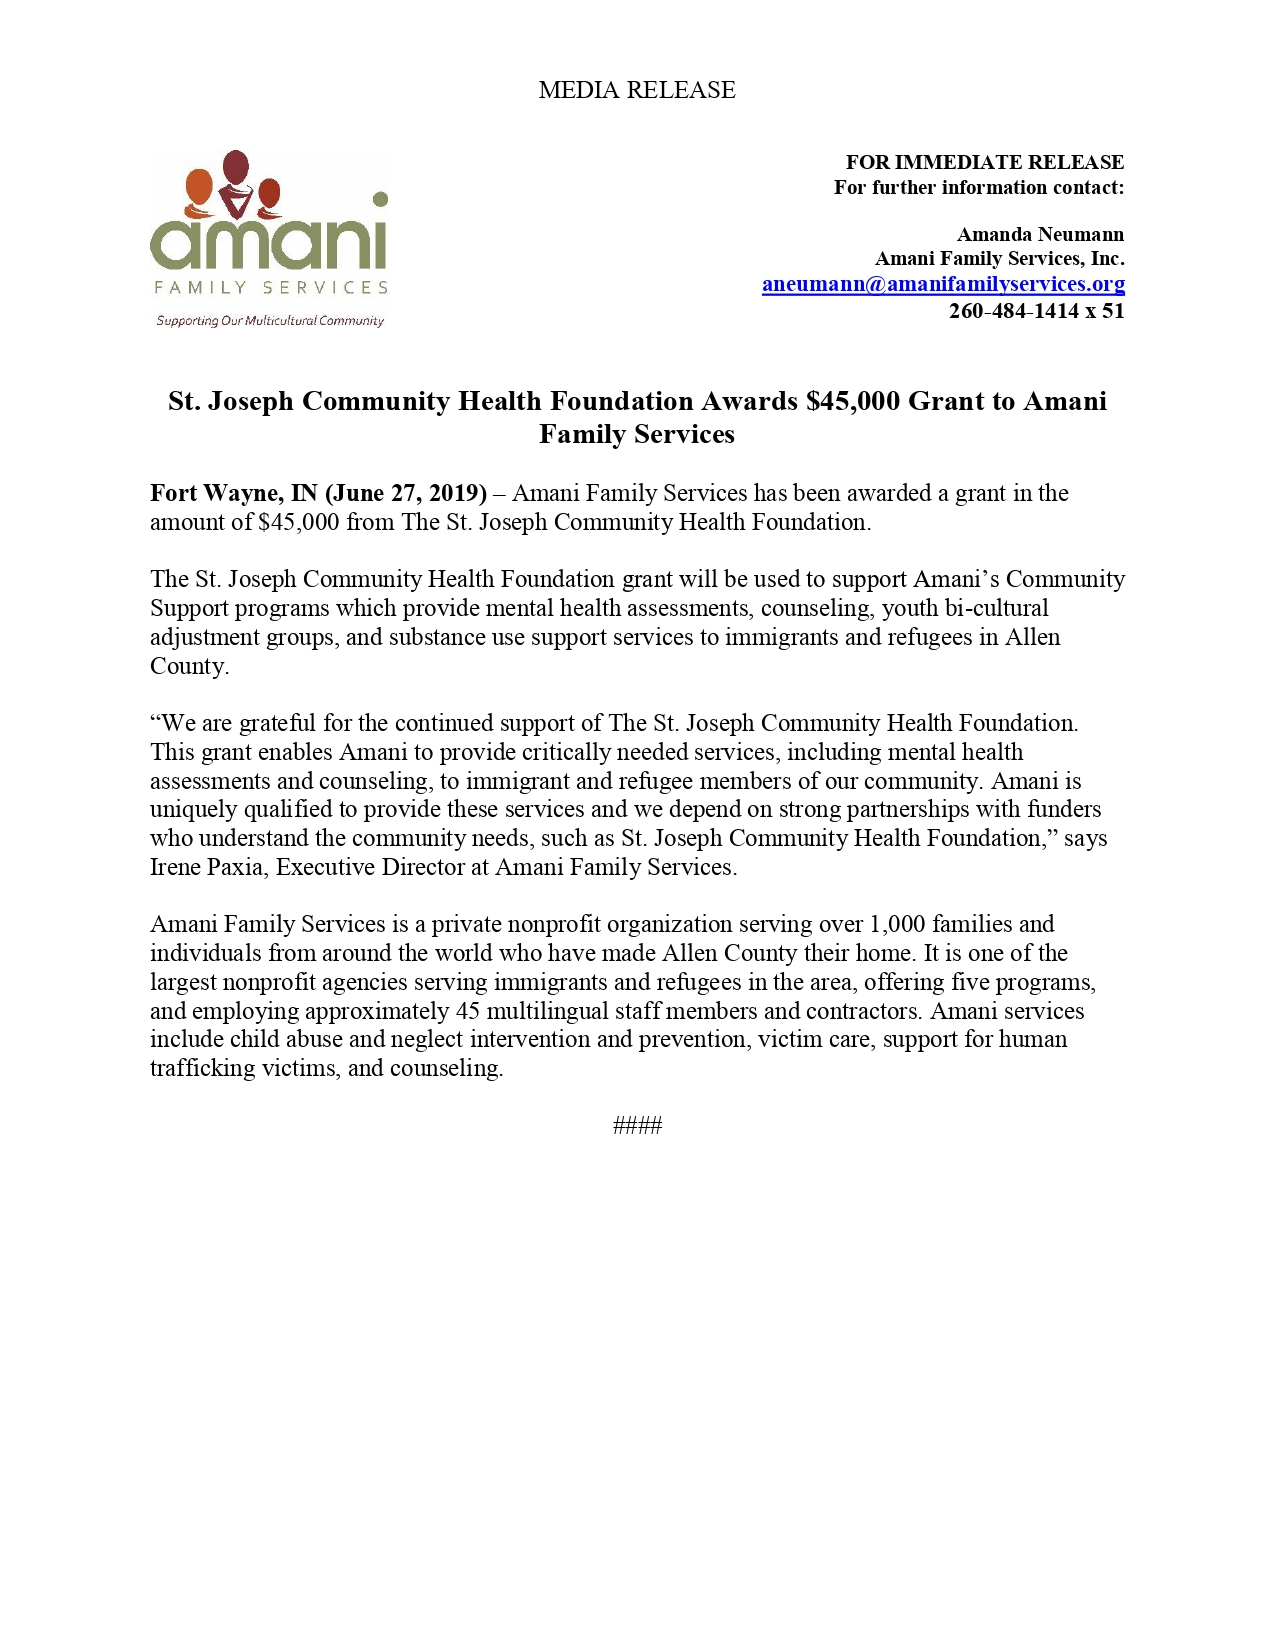 St. Joseph Community Health Foundation 2019 Press Release_pages-to-jpg-0001.jpg